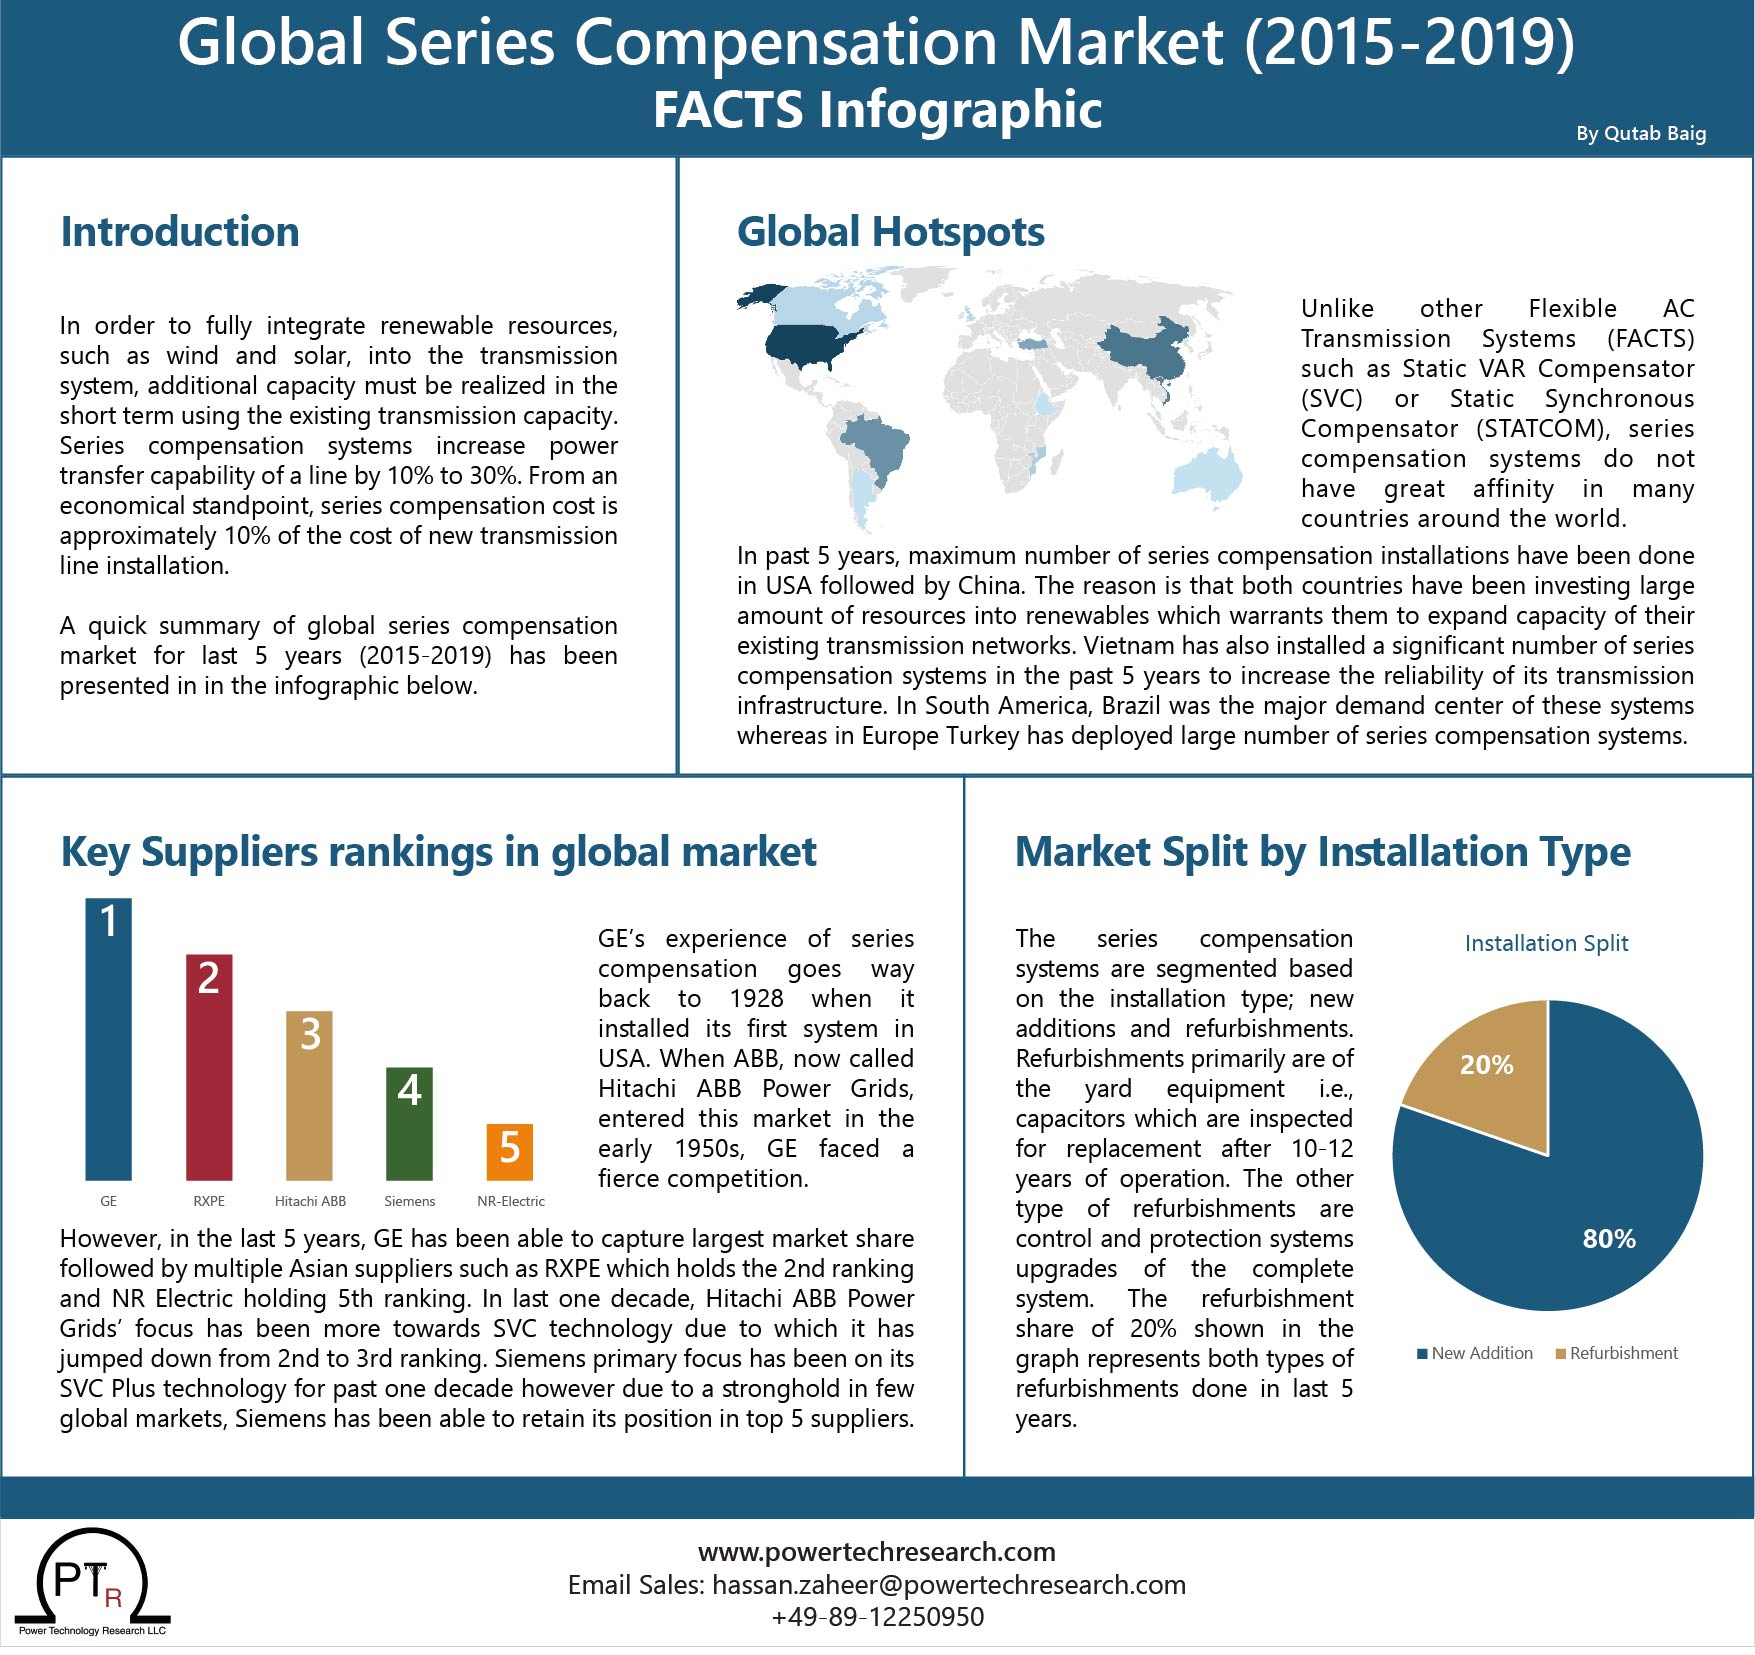 FACTS Infographic Global Series Compensation Market (2015-2019)